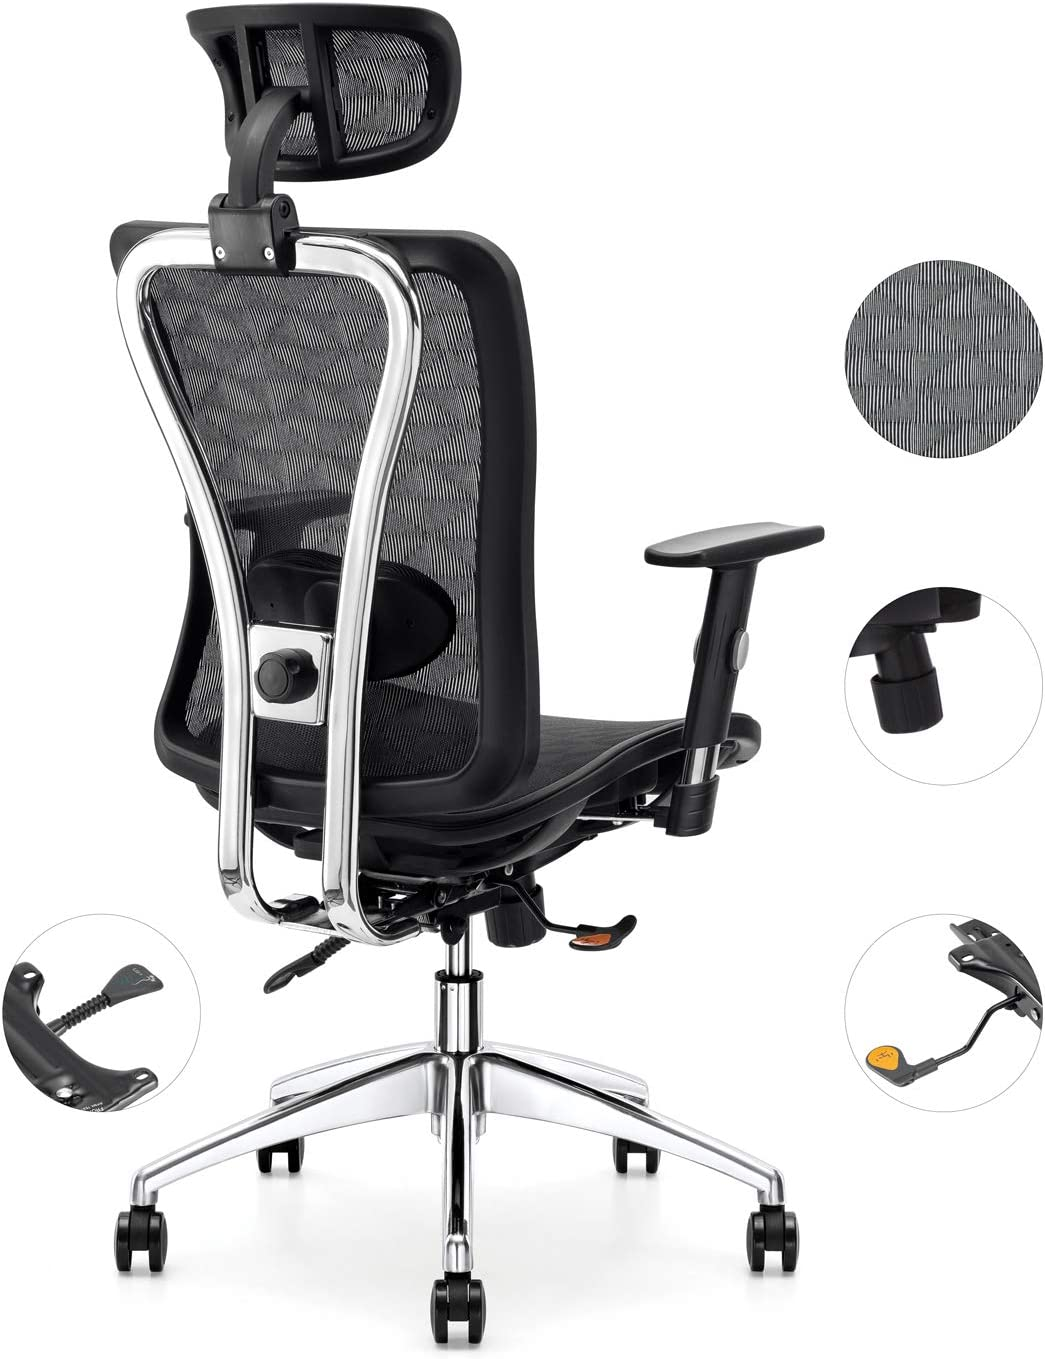 Amazon Com Cedric Office Chair Breathable Mesh Computer Chair With Ergonomic Adjustable Lumbar Support Black Swivel Desk Chair With Adjustable Armrest And Headrest Mesh Seat Bifma Certification No 5 1 Furniture Decor